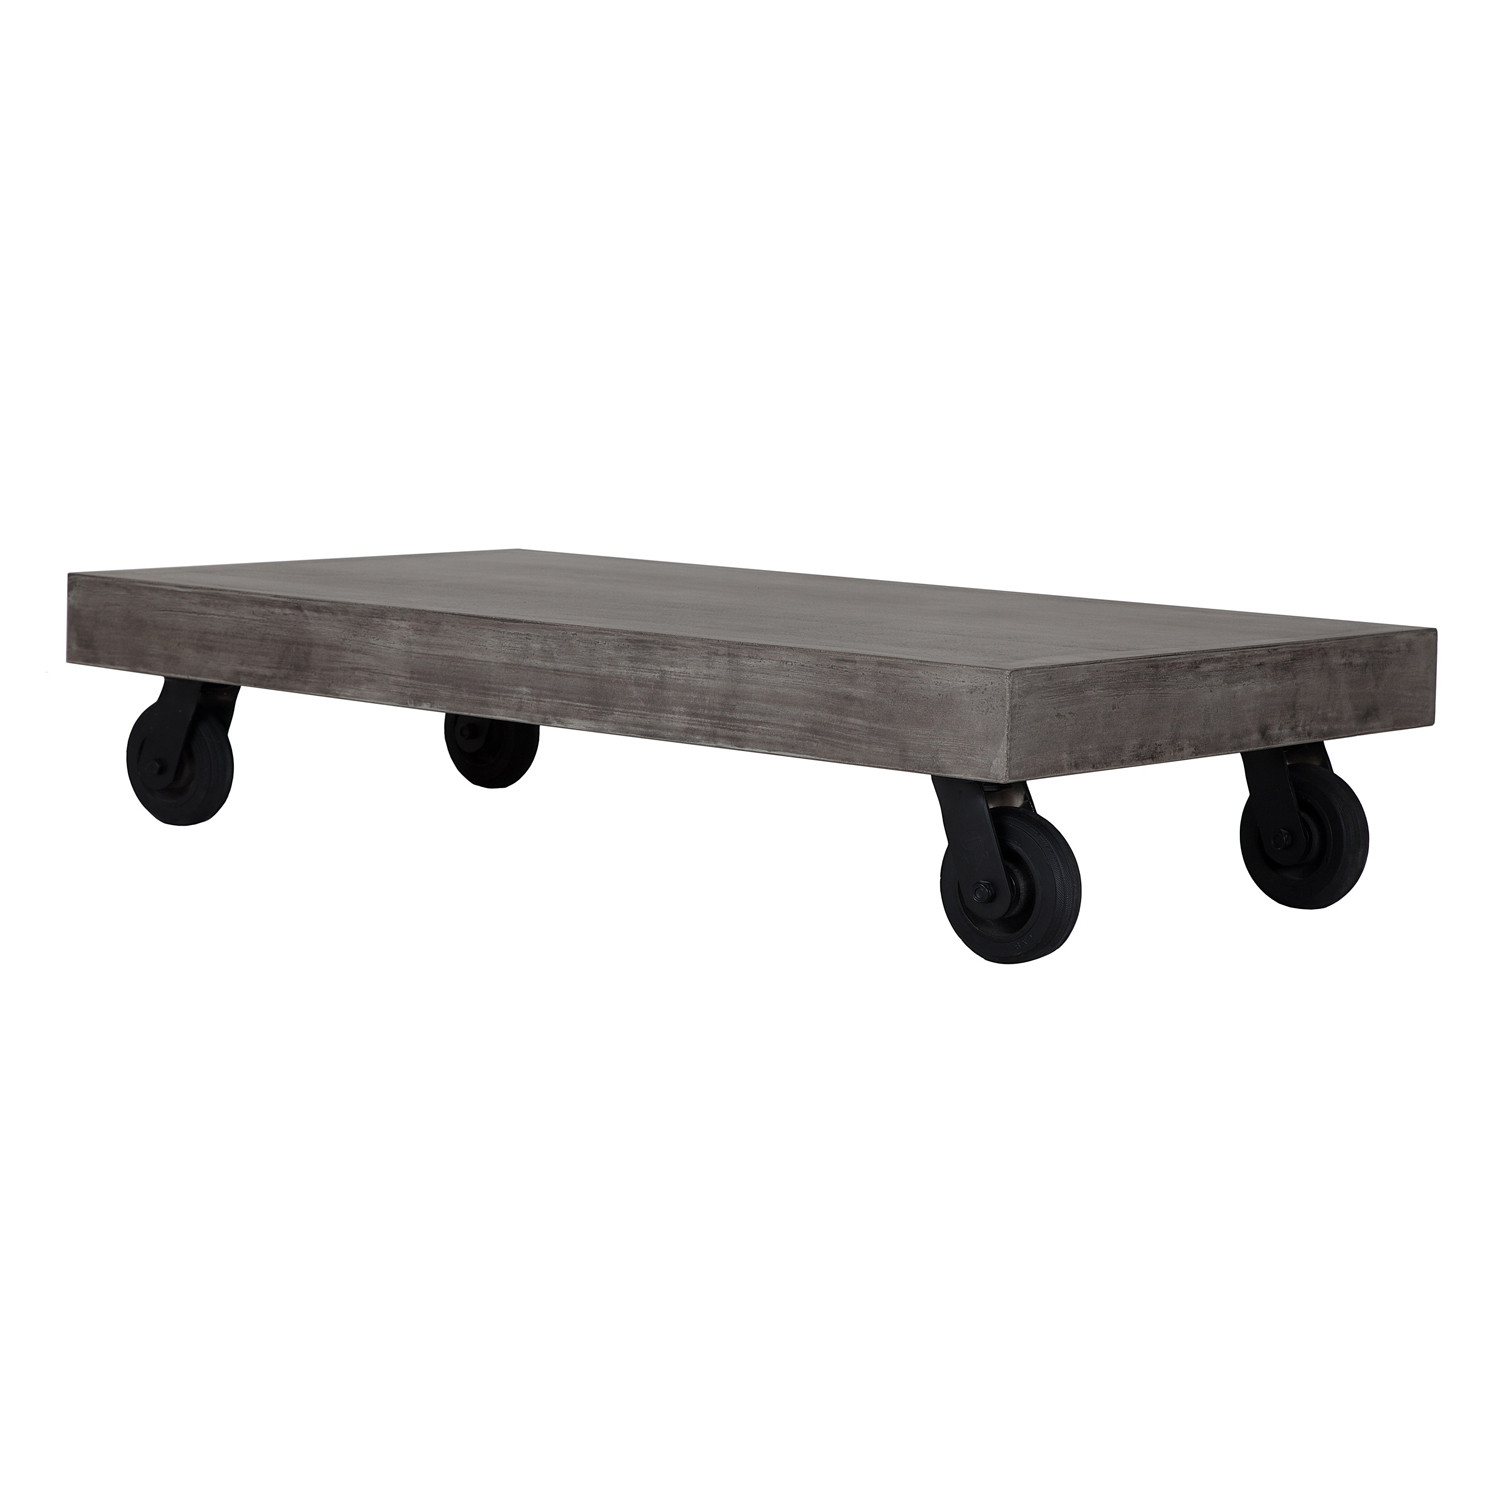 Vega Coffee Table on Wheels Furniture Maison Touch of Modern